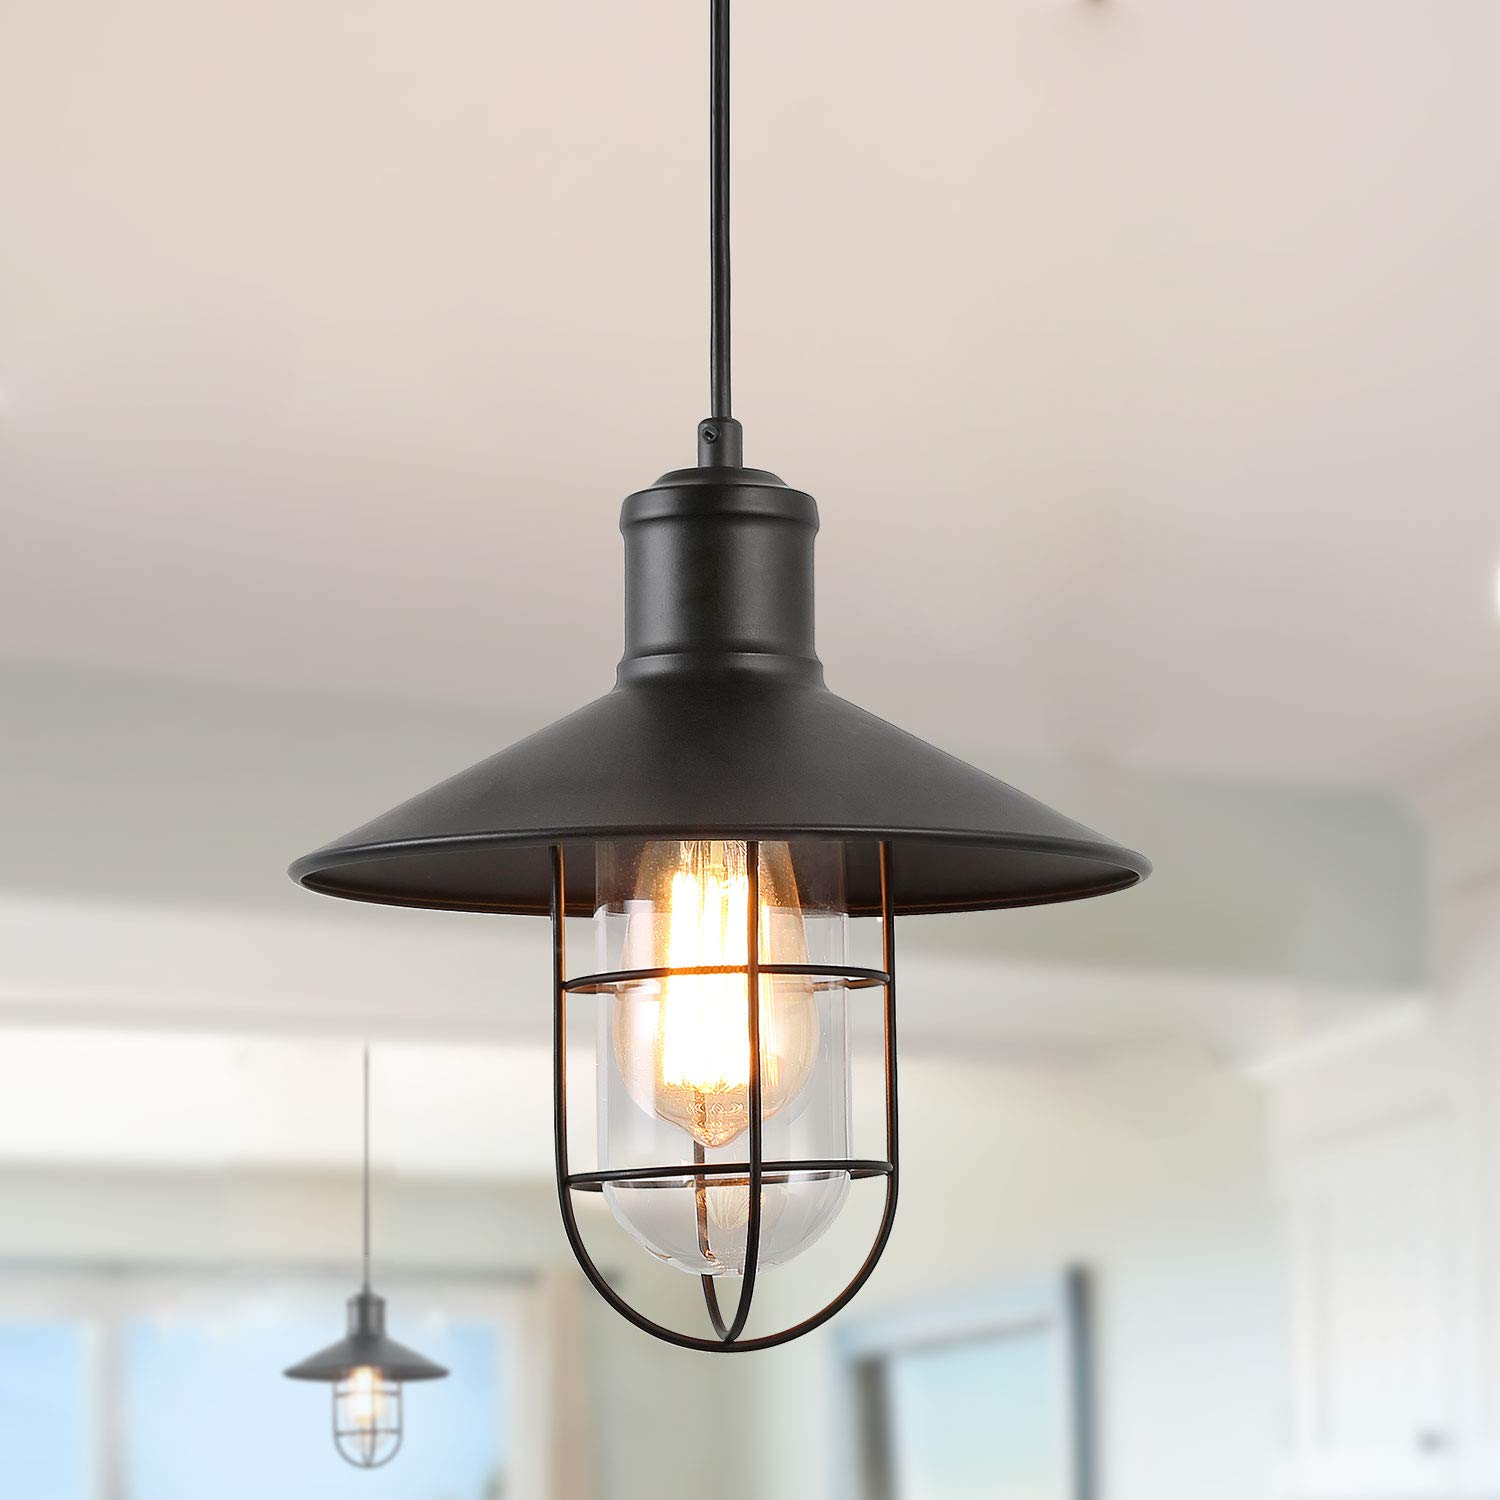 LNC Pendant Lighting for Kitchen Island Black Industrial Hanging Lamp A01910 by LNC